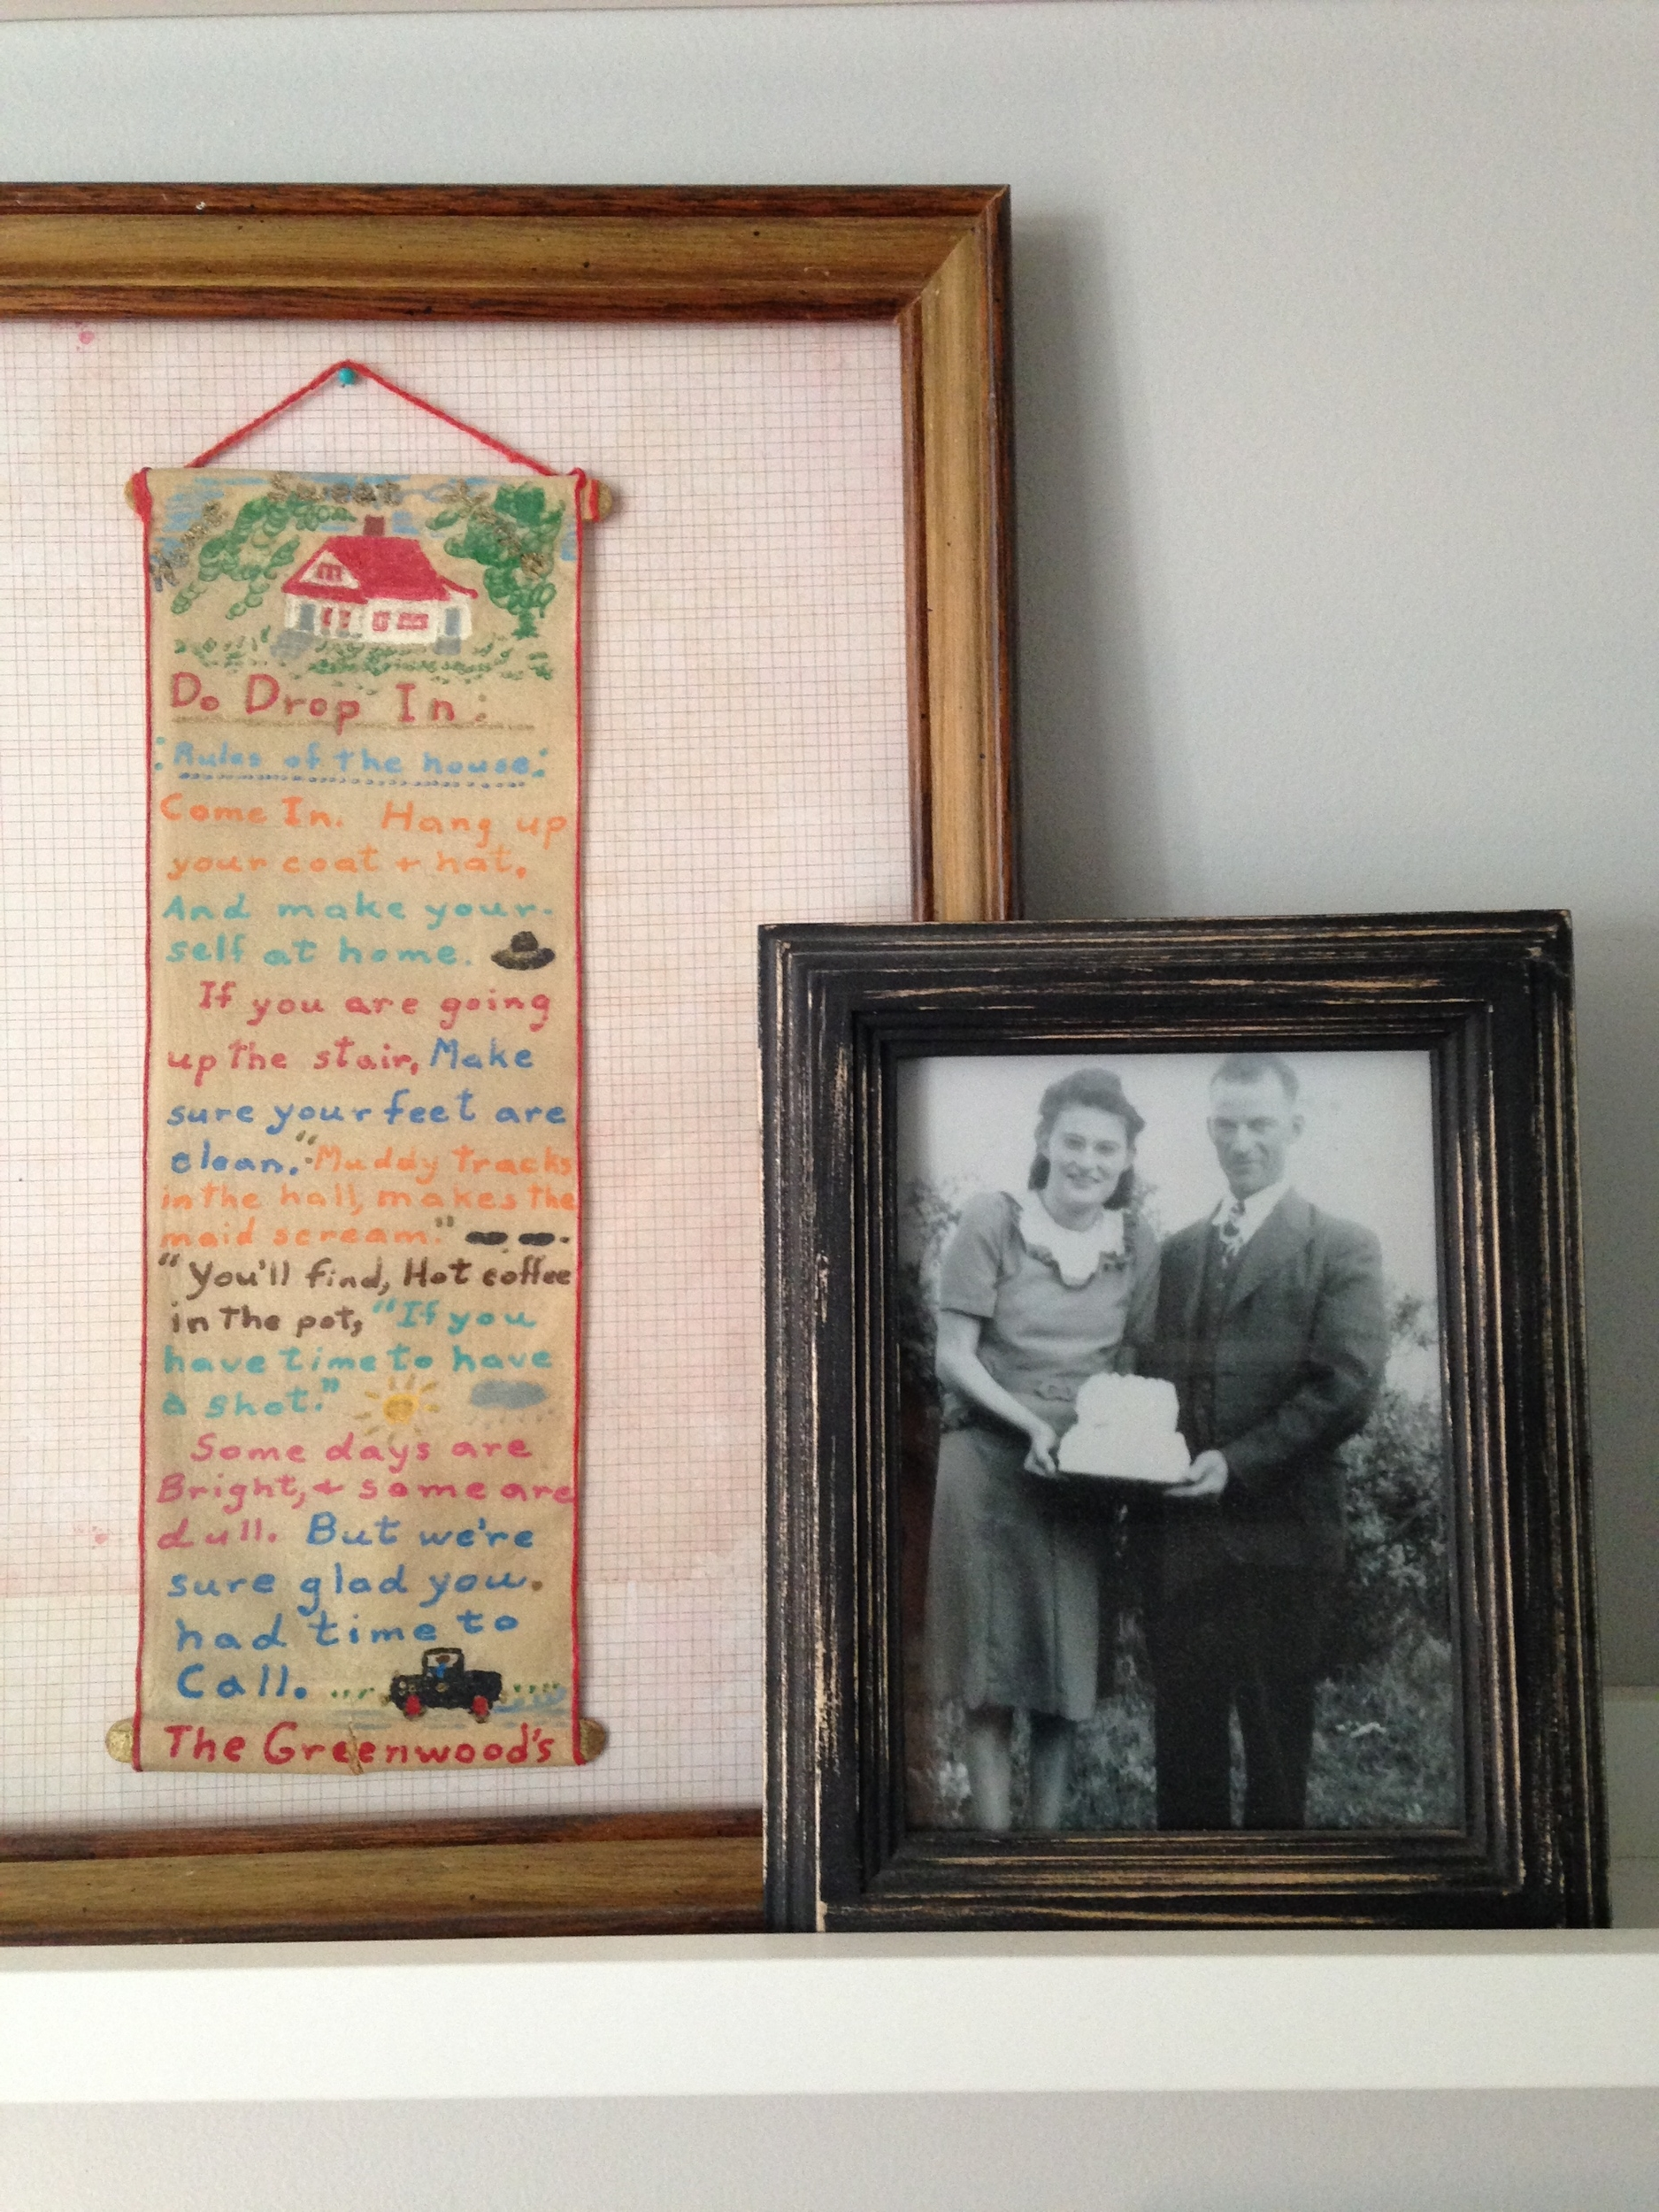 This 'rules of the house' hung in my gramma's farmhouse and now in mine. She made it using some old paper, popsicle sticks and some paint. Crafter after my own heart. <3